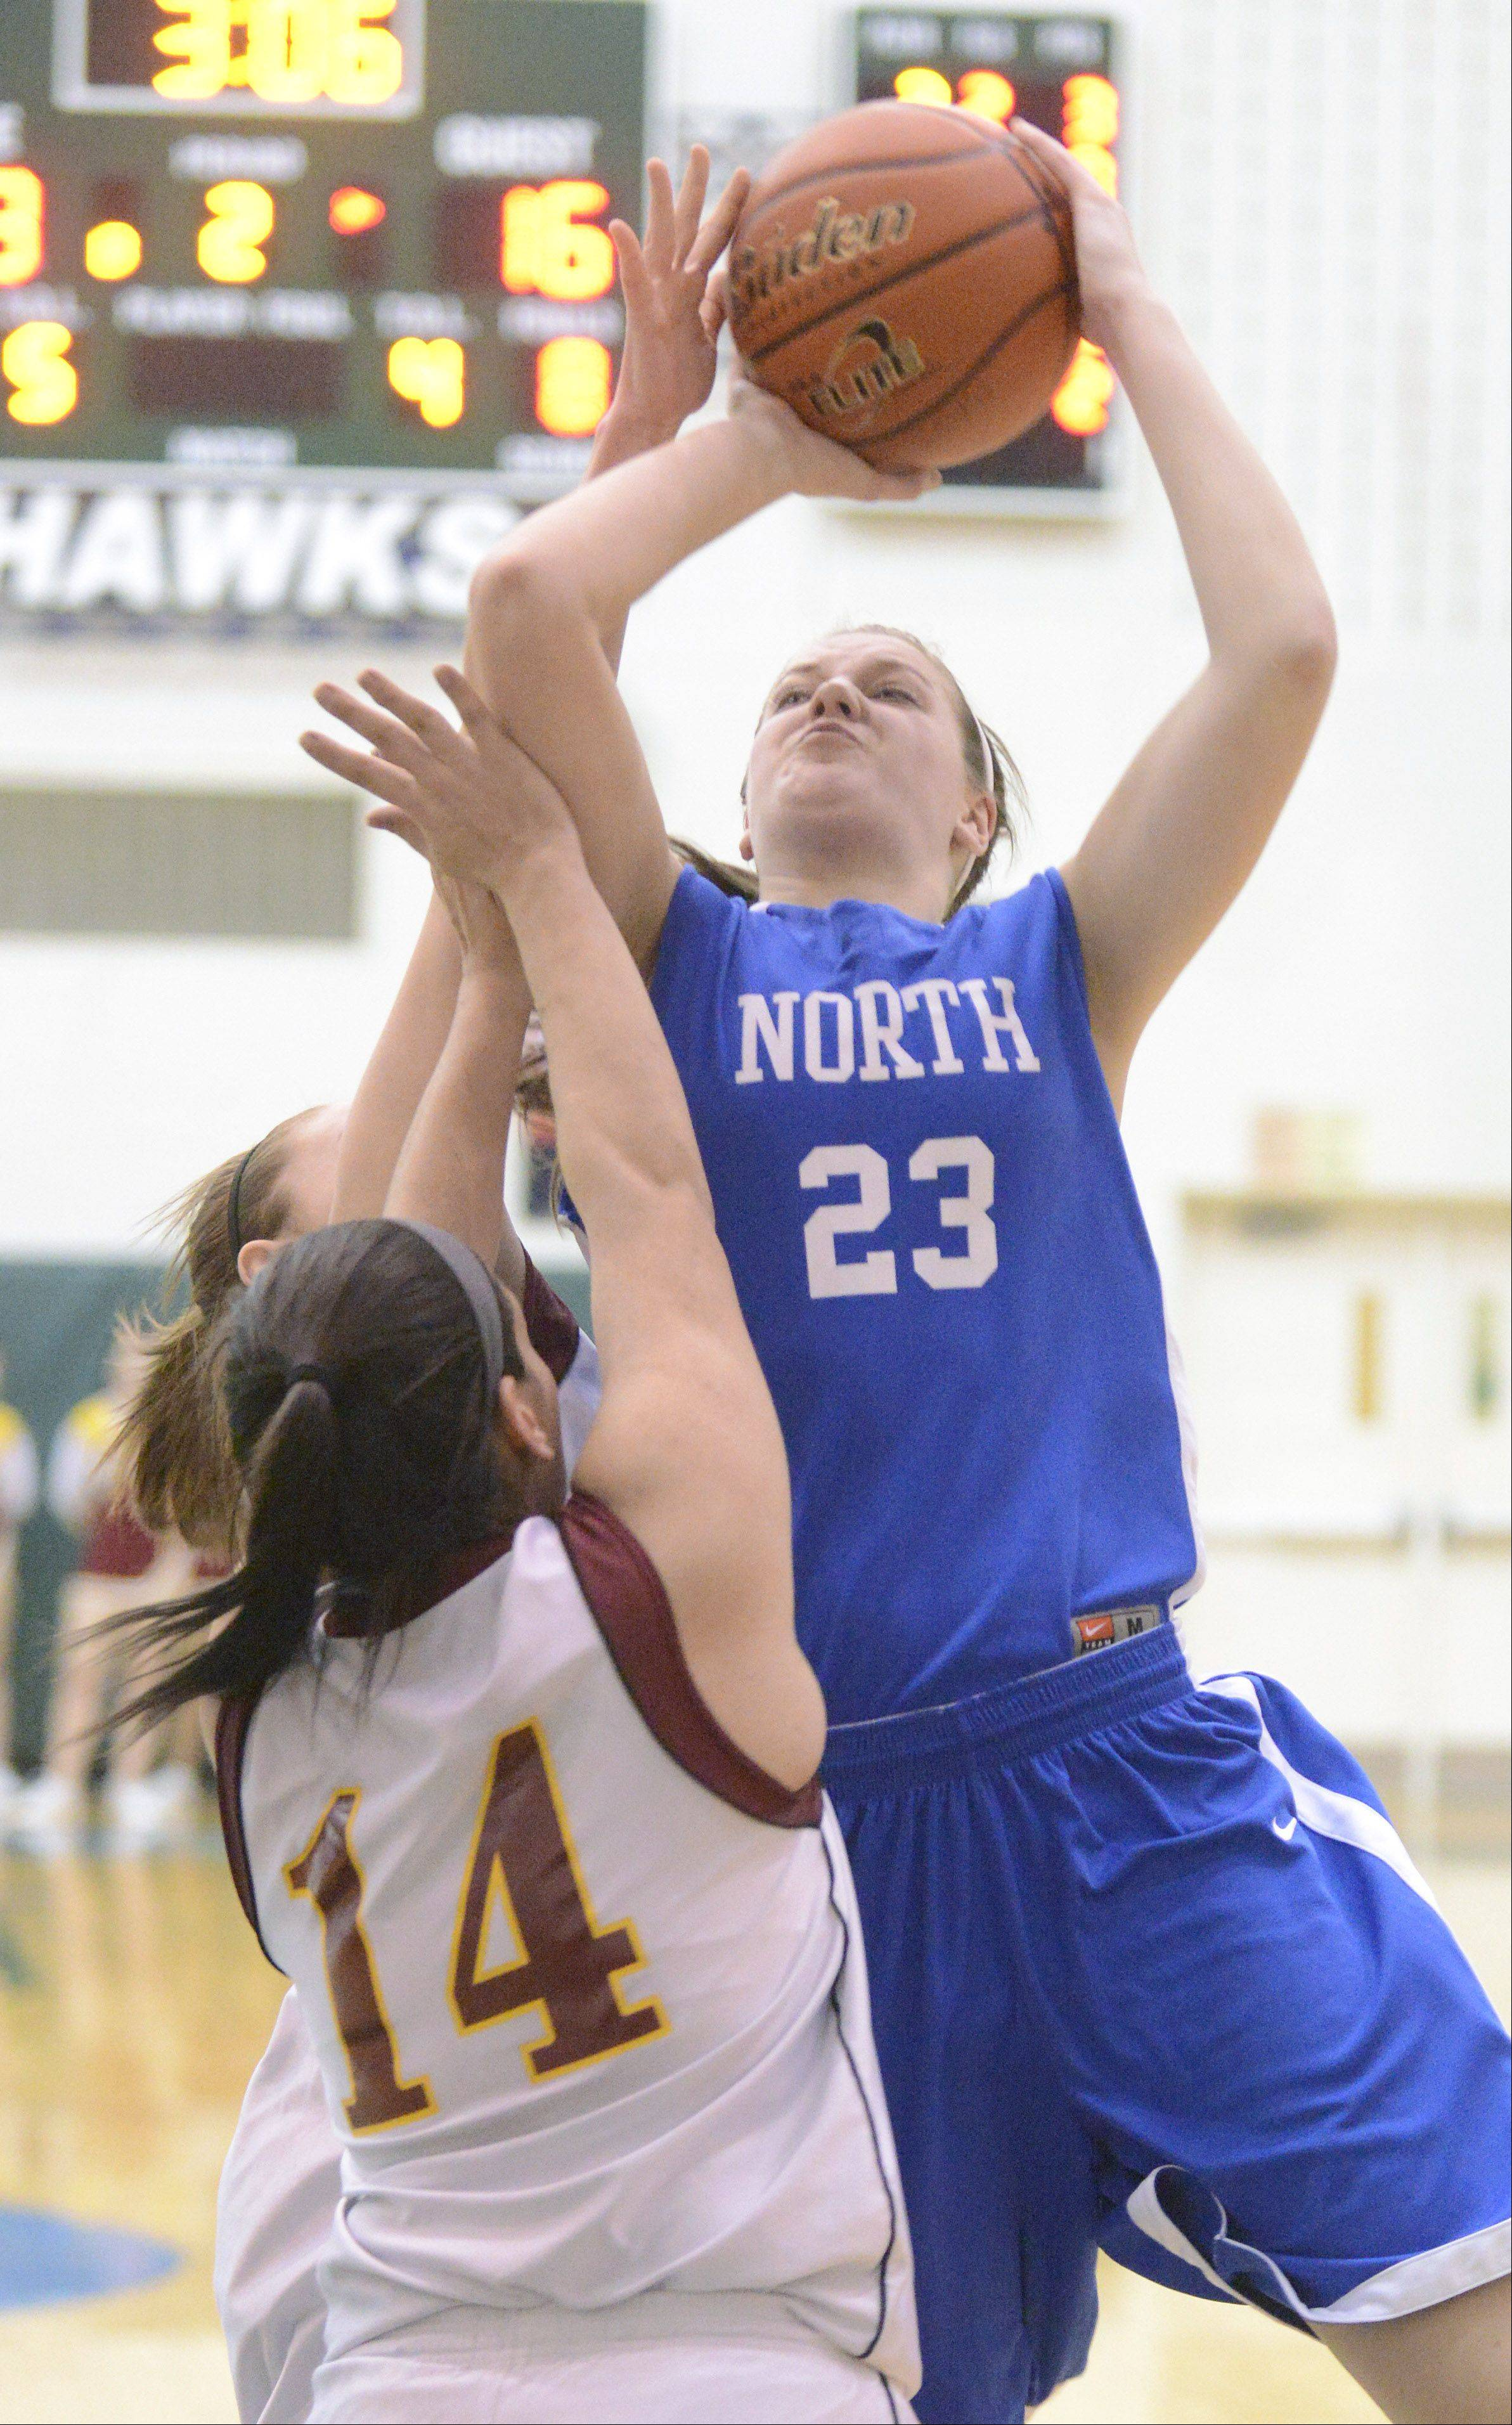 Wheaton North's Chrissy Baird shoots over a block by Schaumburg's Carly Brossard in the second quarter of the Class 4A regional game on Tuesday, February 19.